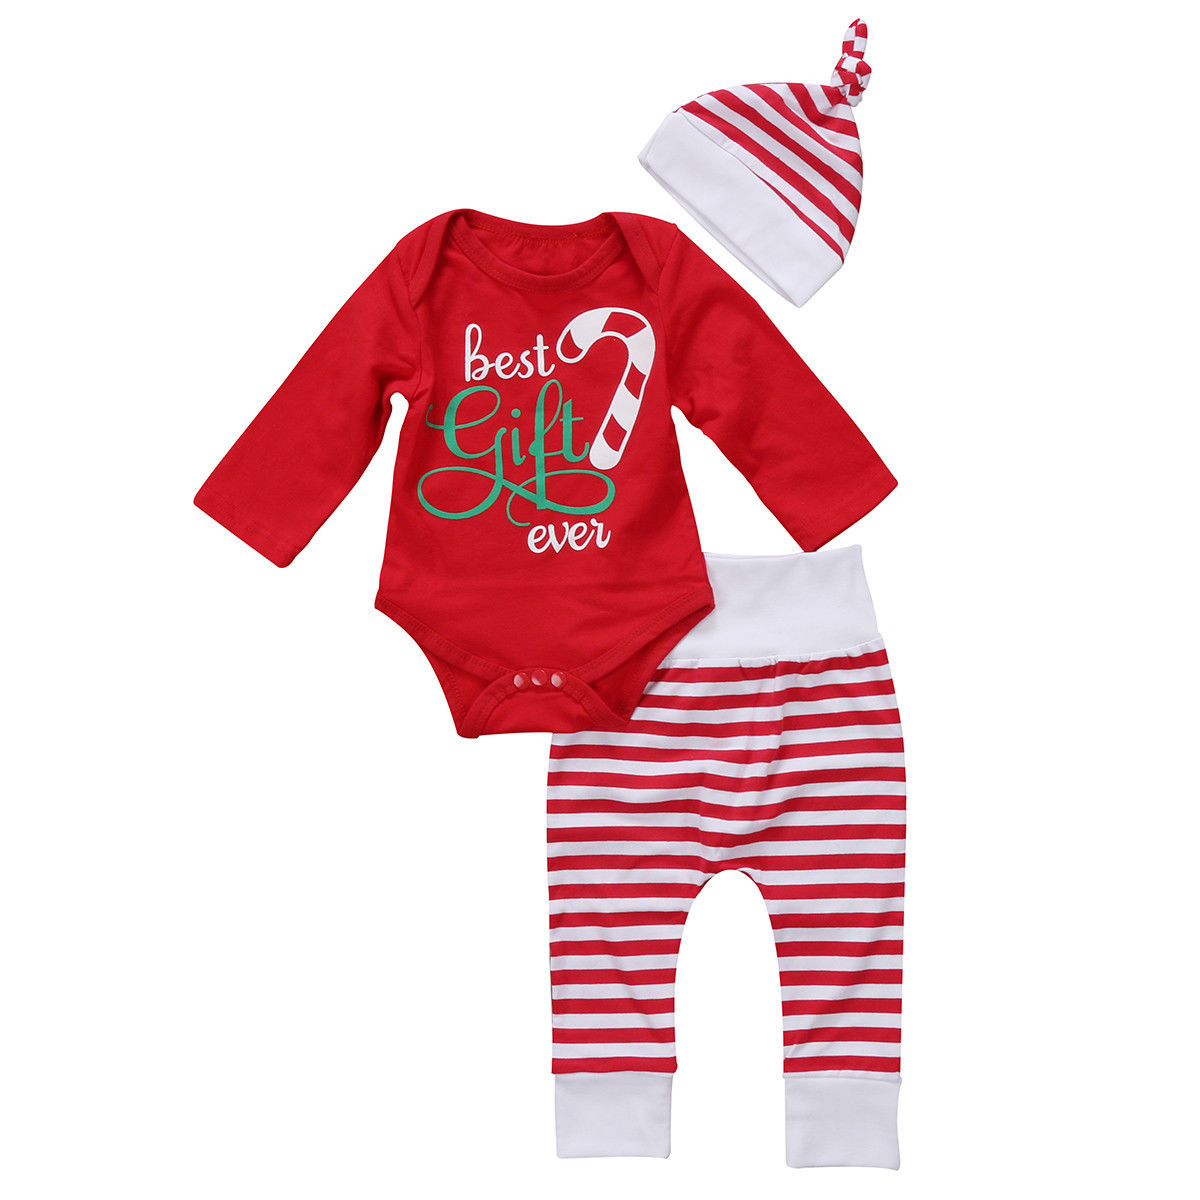 2017 Brand New 3PCS Set Newborn Toddler Infant Baby Girl Boy Clothes Romper Long Sleeve Shirt Tops Pants Hat Santa Candy Outfits newborn infant girl boy long sleeve romper floral deer pants baby coming home outfits set clothes